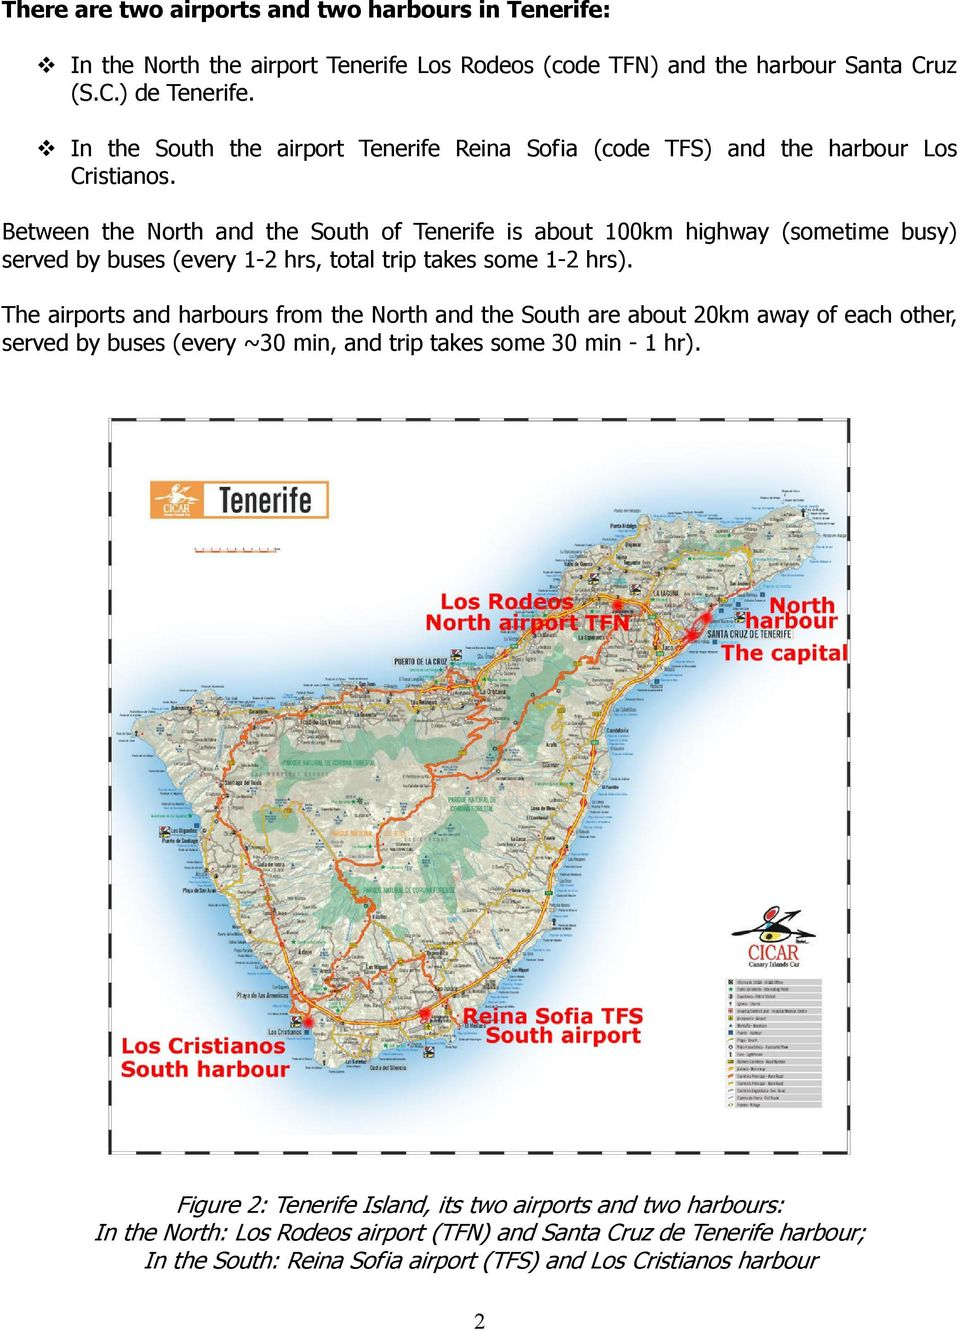 Between the North and the South of Tenerife is about 100km highway (sometime busy) served by buses (every 1-2 hrs, total trip takes some 1-2 hrs).